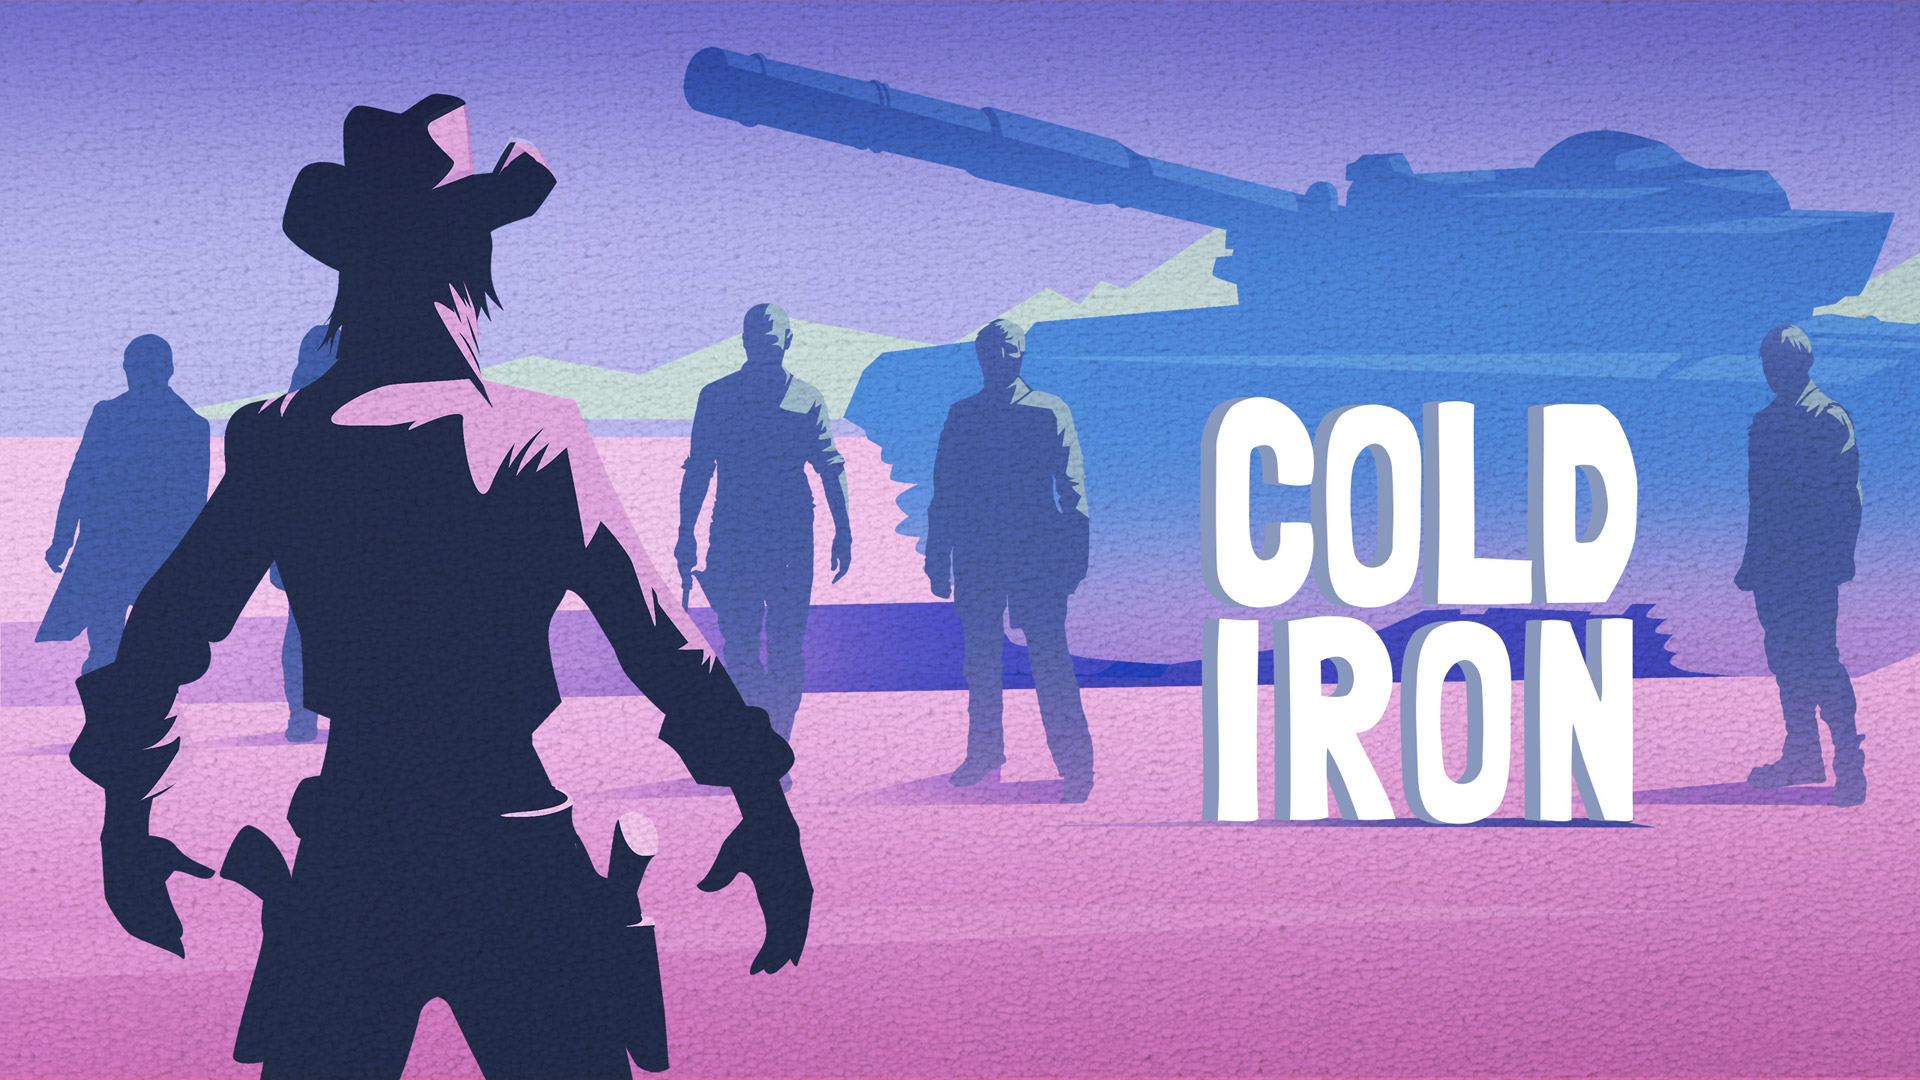 Free Cold Iron Wallpaper in 1920x1080